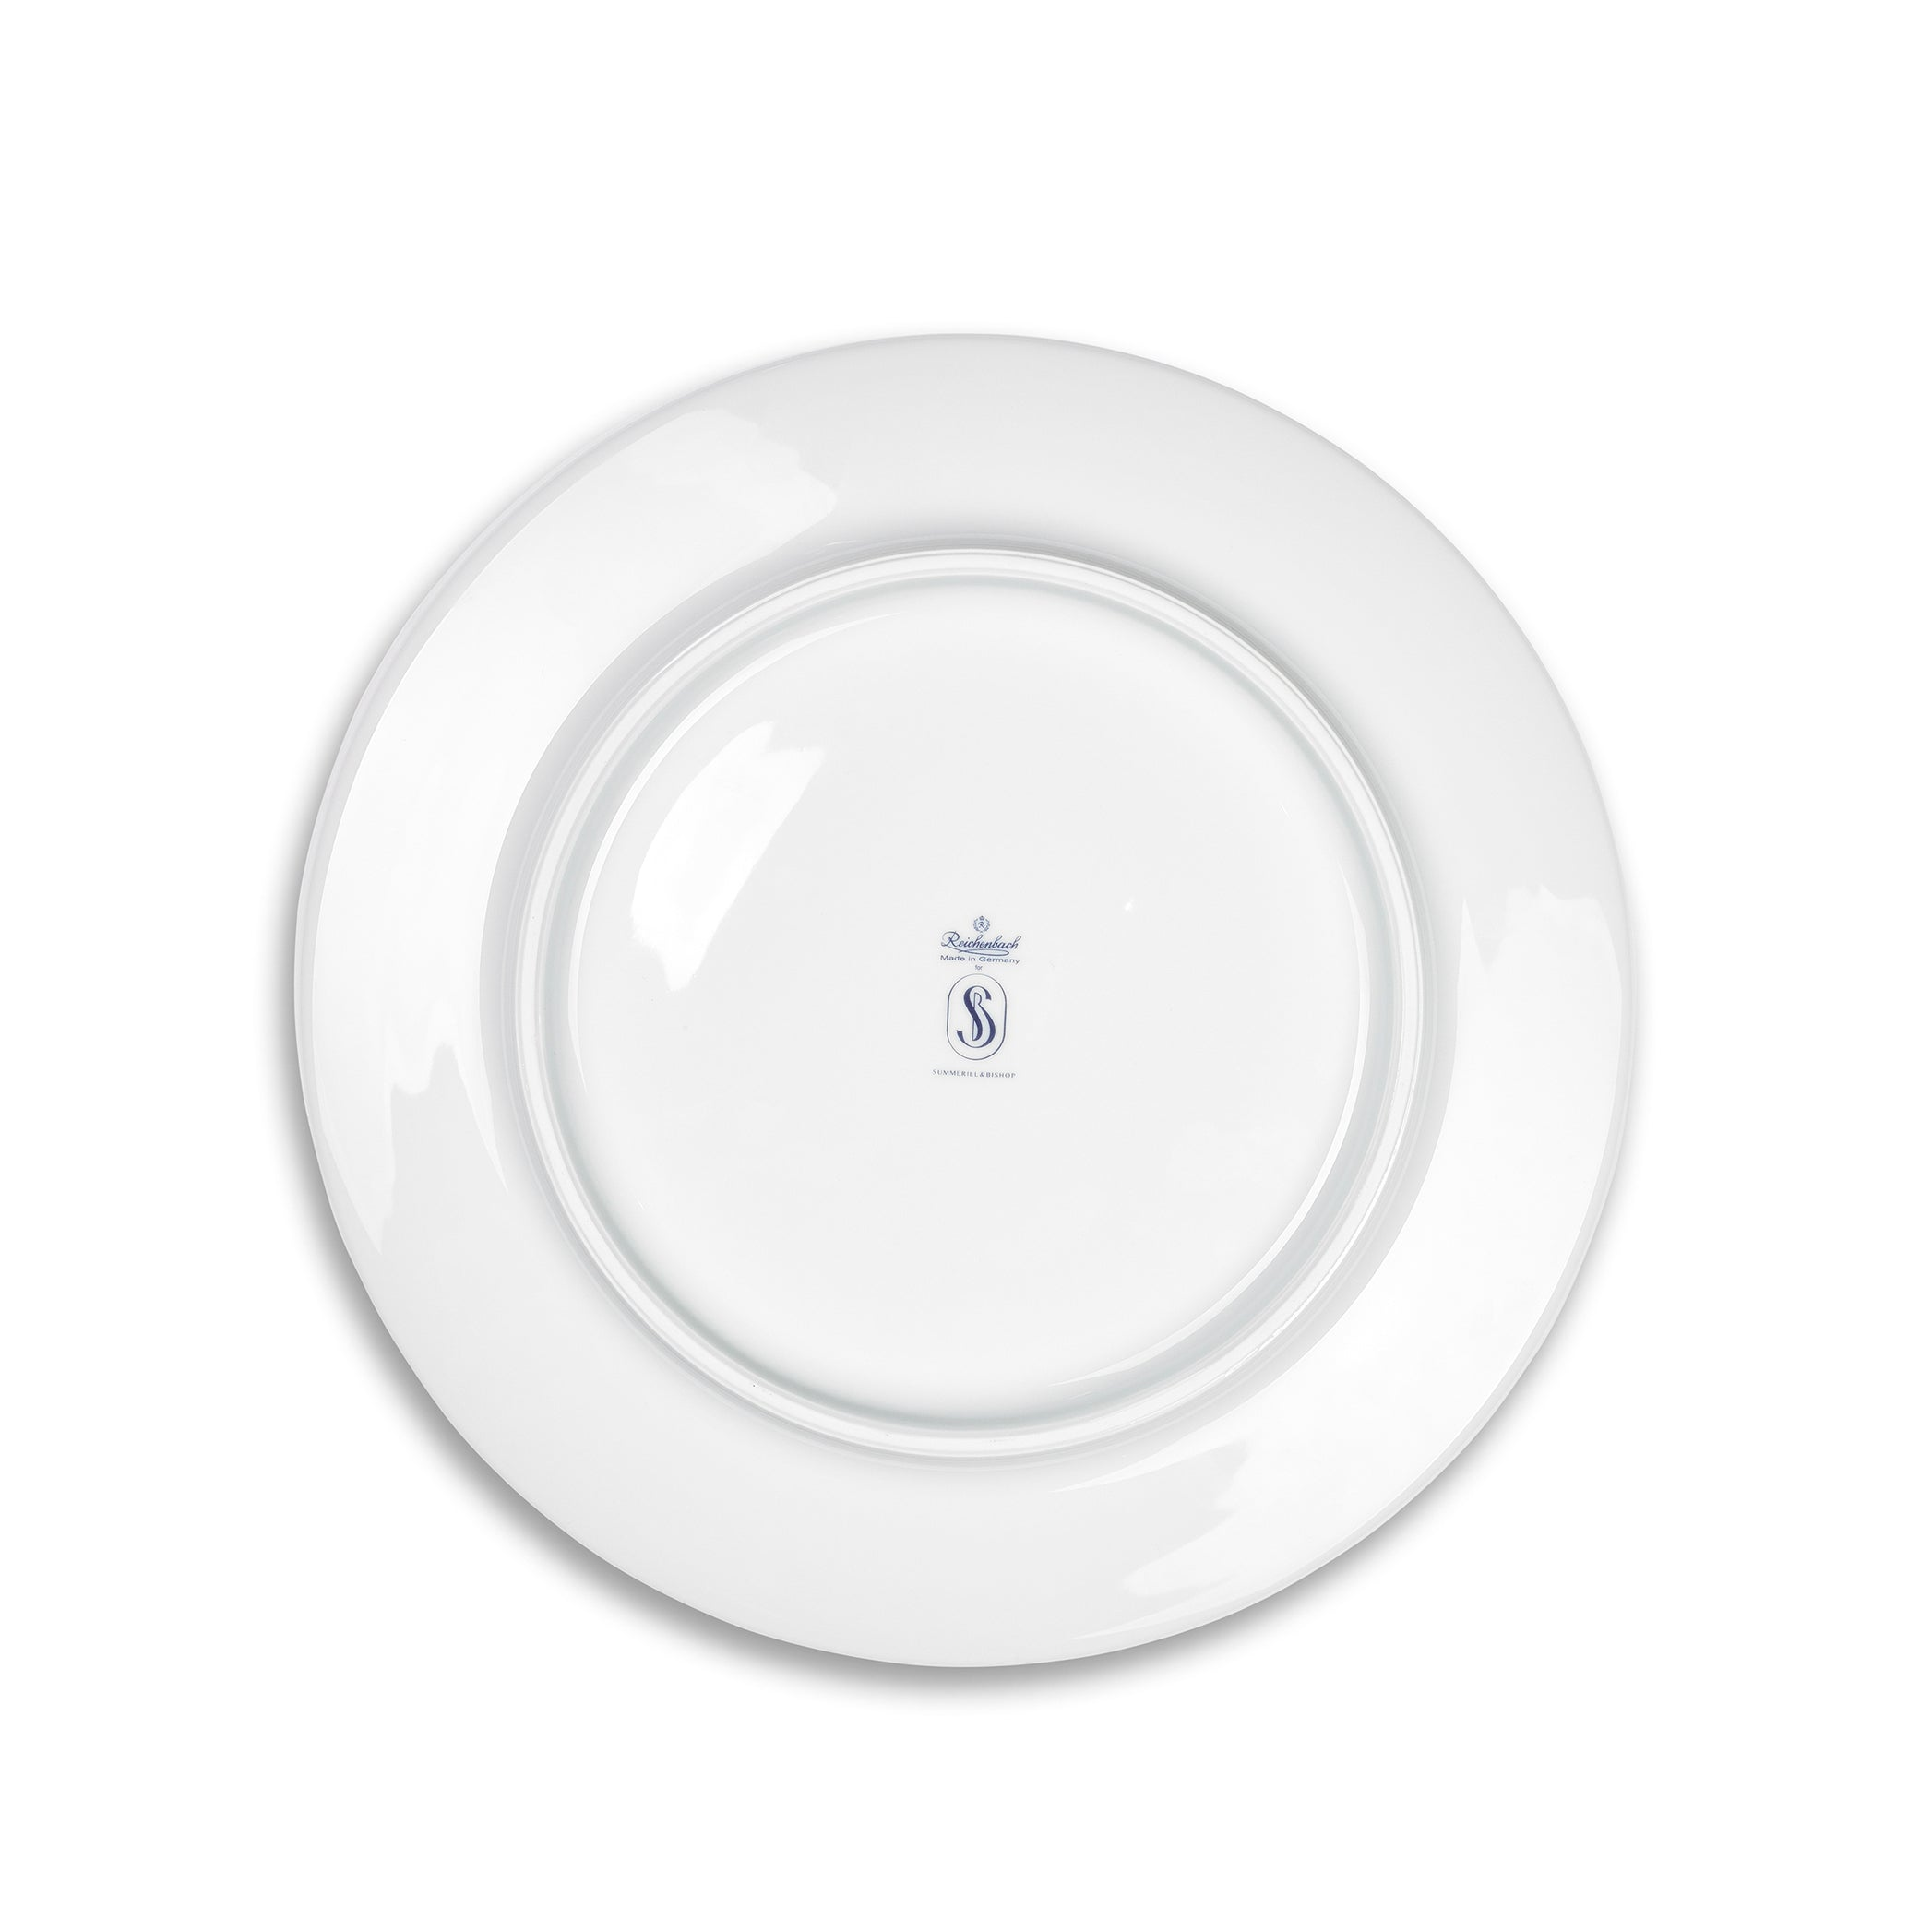 S&B 33cm Porcelain Charger with Blue Edge